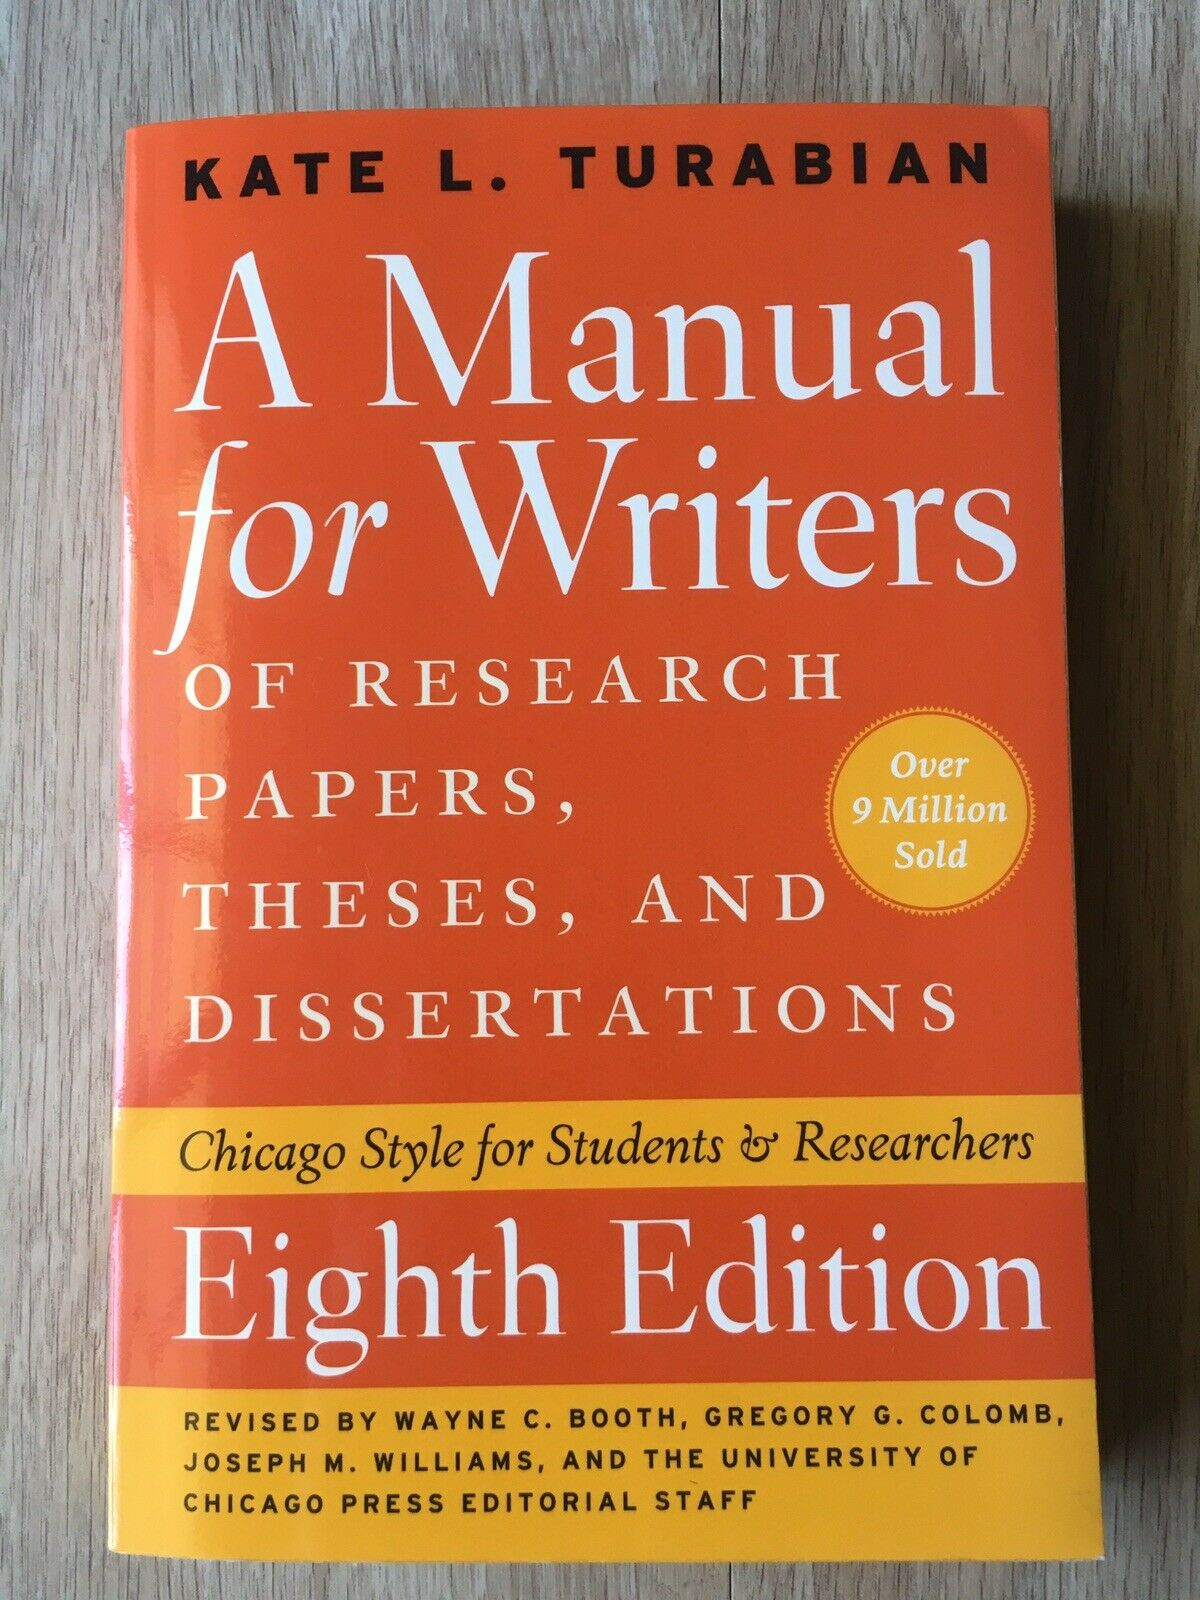 013 Manual For Writers Of Research Papers Theses And Dissertations Turabian Paper S Amazing A Pdf Full